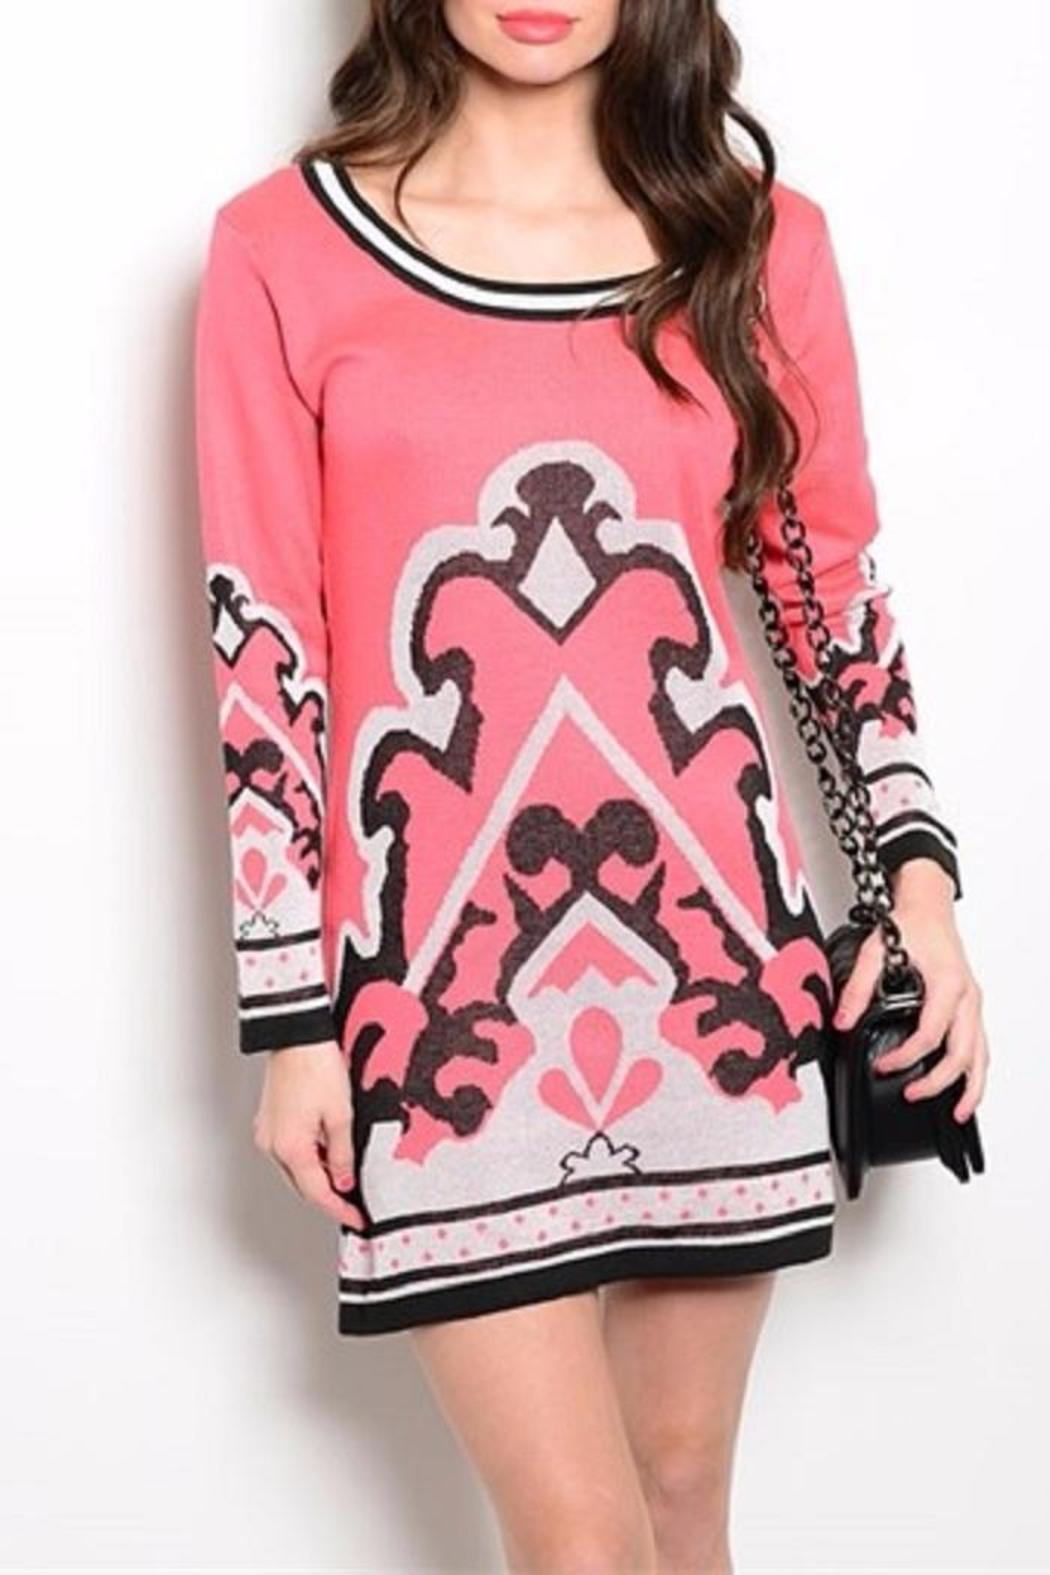 Ooh la la boutique coral sweater dress from texas by ooh la la ooh la la boutique coral sweater dress front cropped image publicscrutiny Choice Image